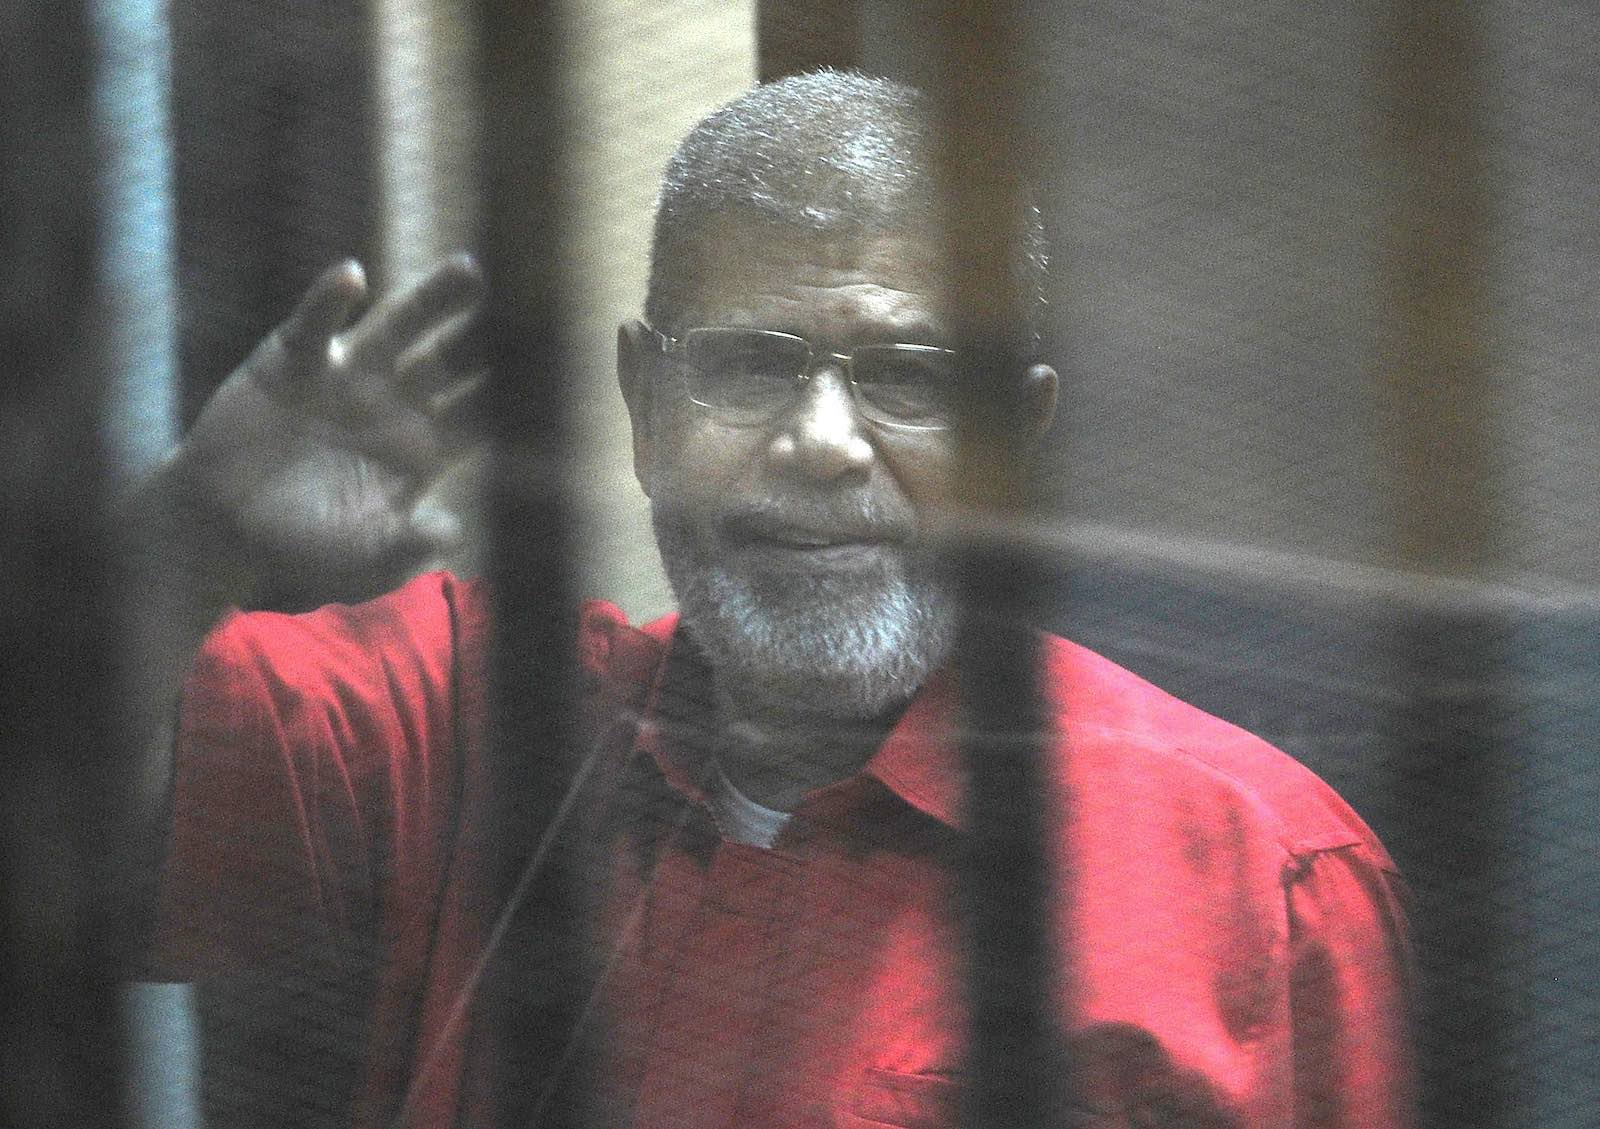 Former Egyptian president Mohamed Morsi in court in 2015 after his ousting (Photo: Ahmed Omar via Getty)